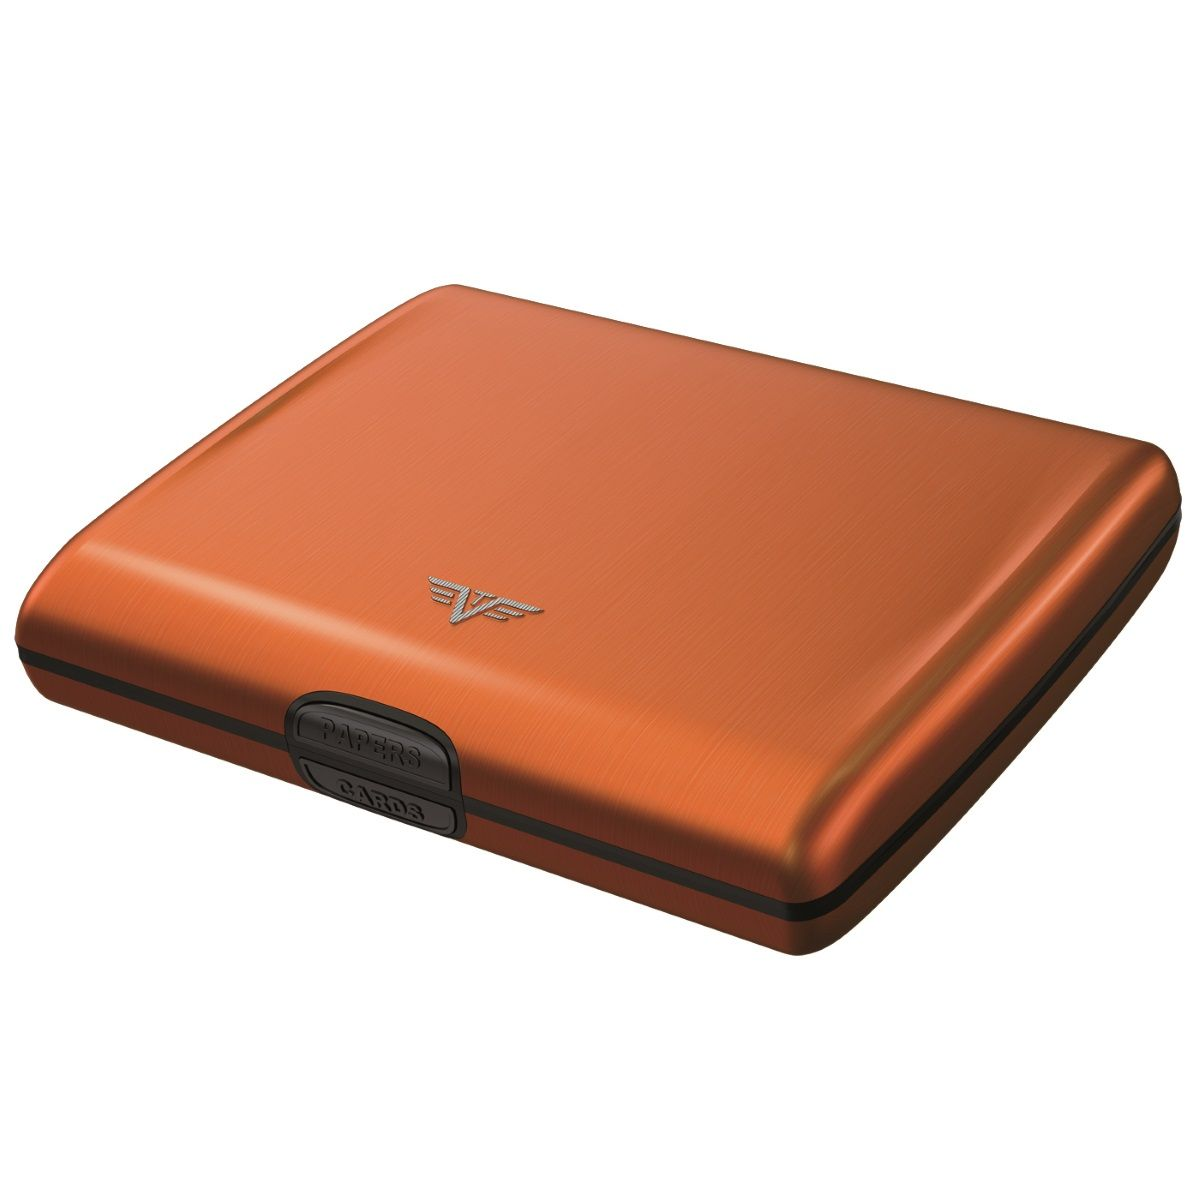 TRU VIRTU Aluminum Wallet Ray - Orange